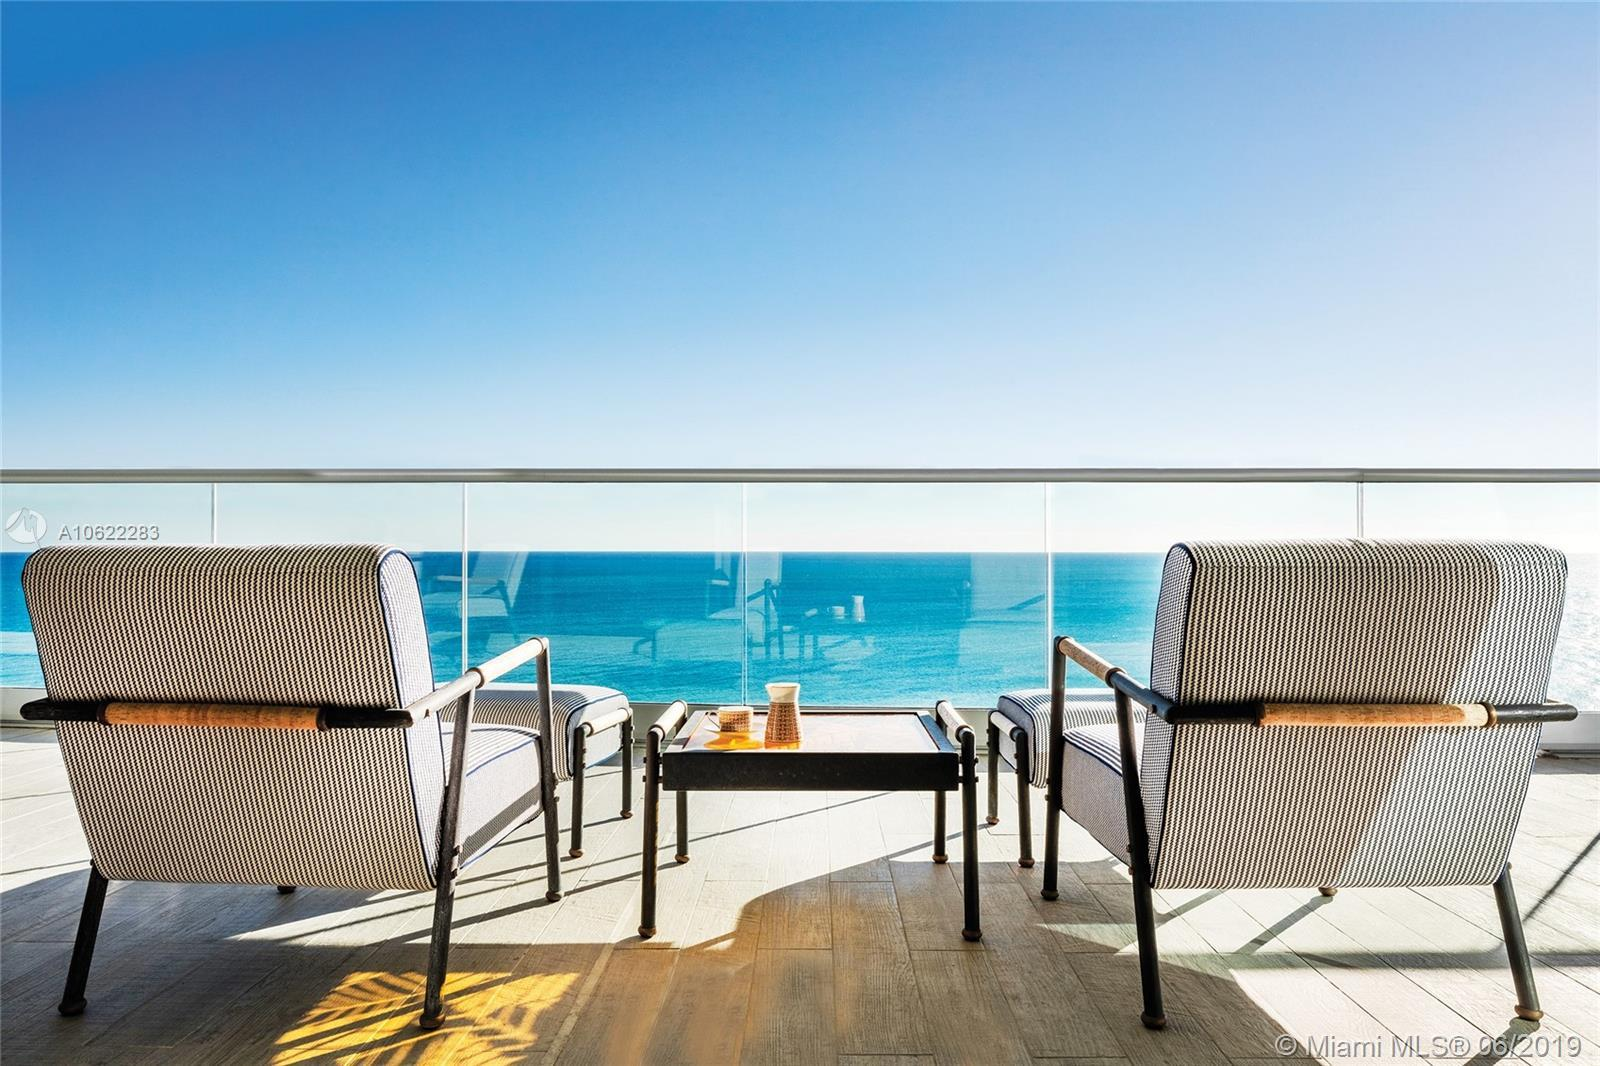 Located on the South Corner of Fendi Chateau, this stunning unit is luxury living at its finest. The